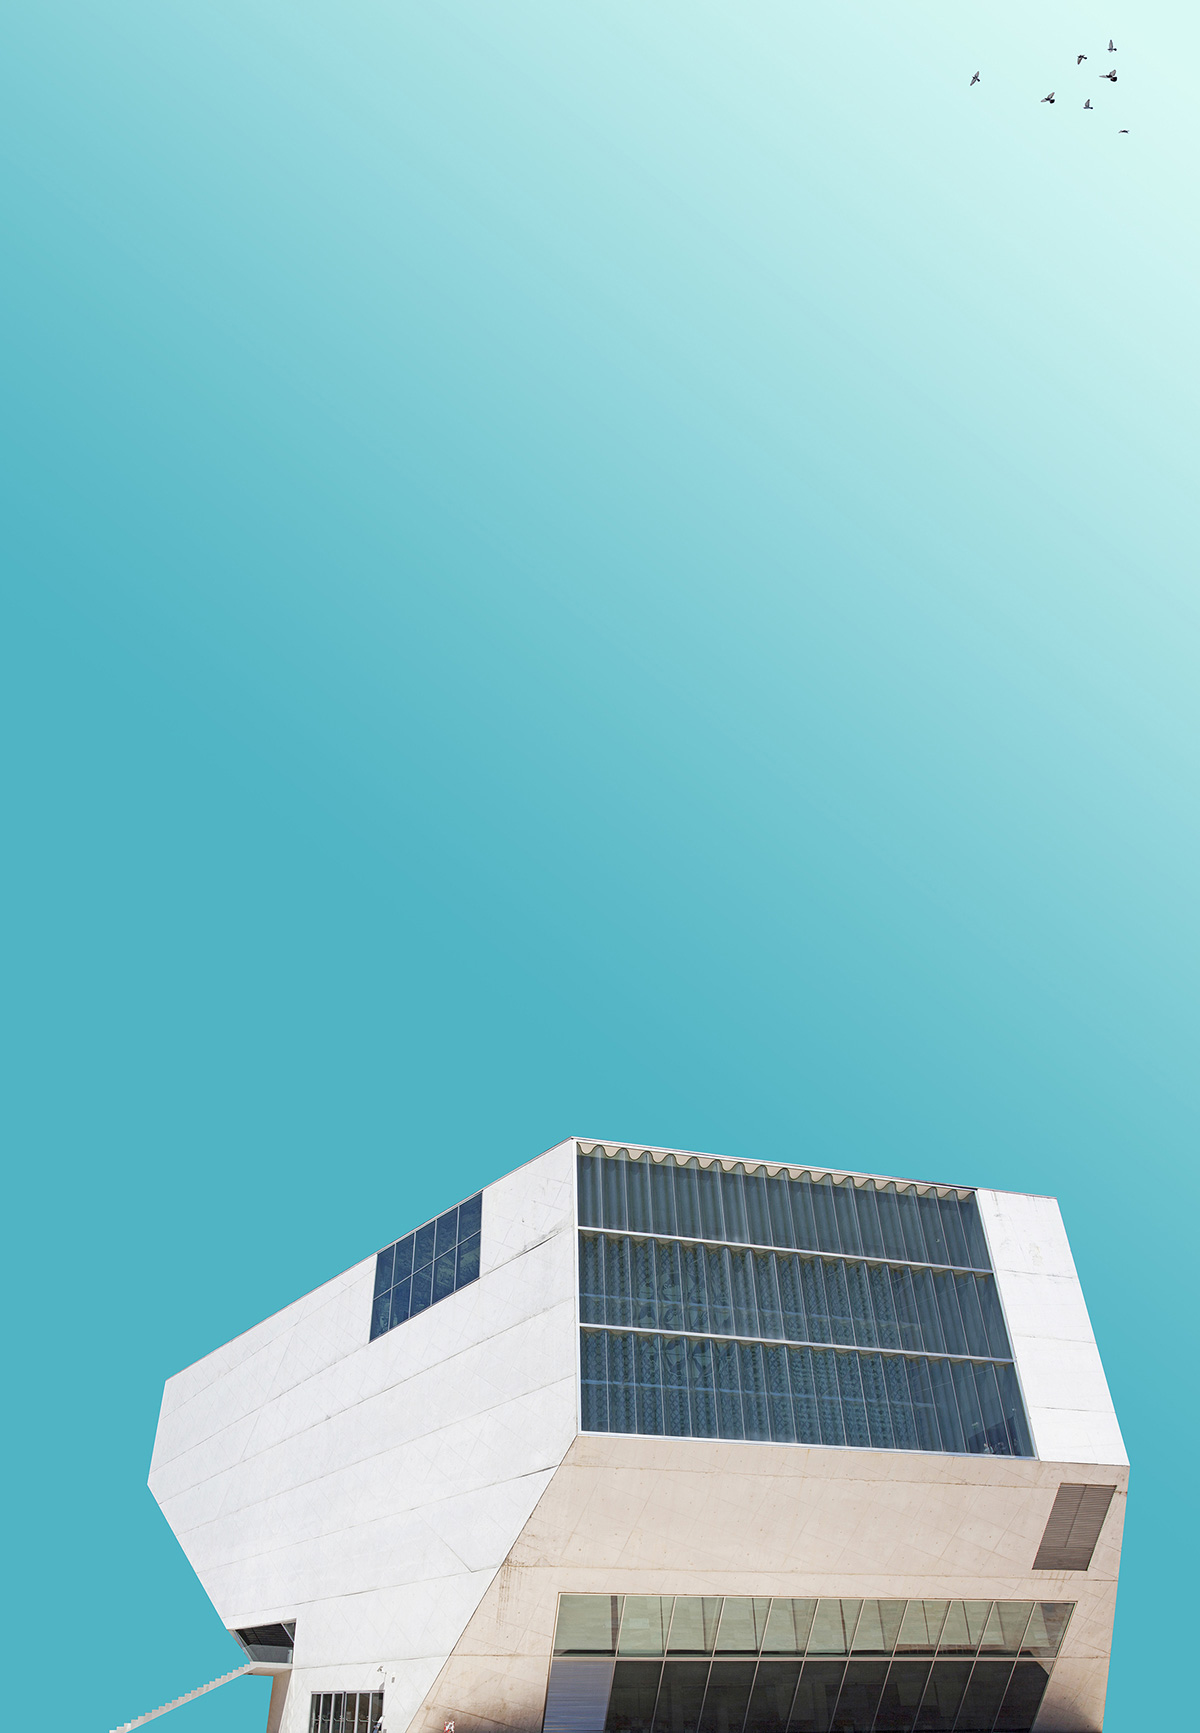 Minimal, soothing architecture images - 8